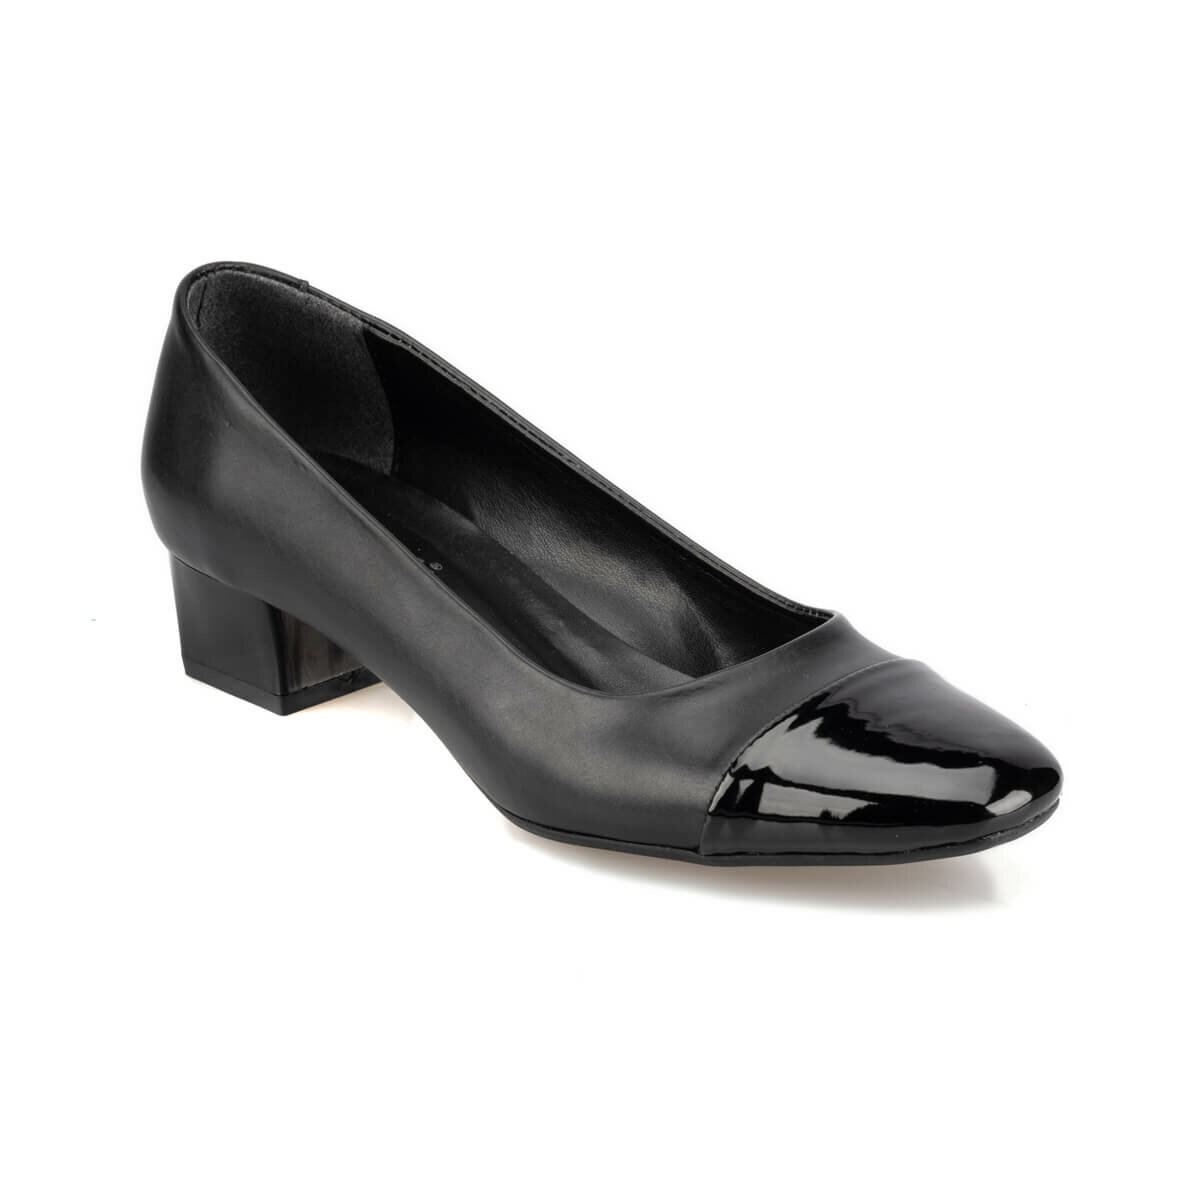 FLO 92.314050.Z Black Women Gova Shoes Polaris